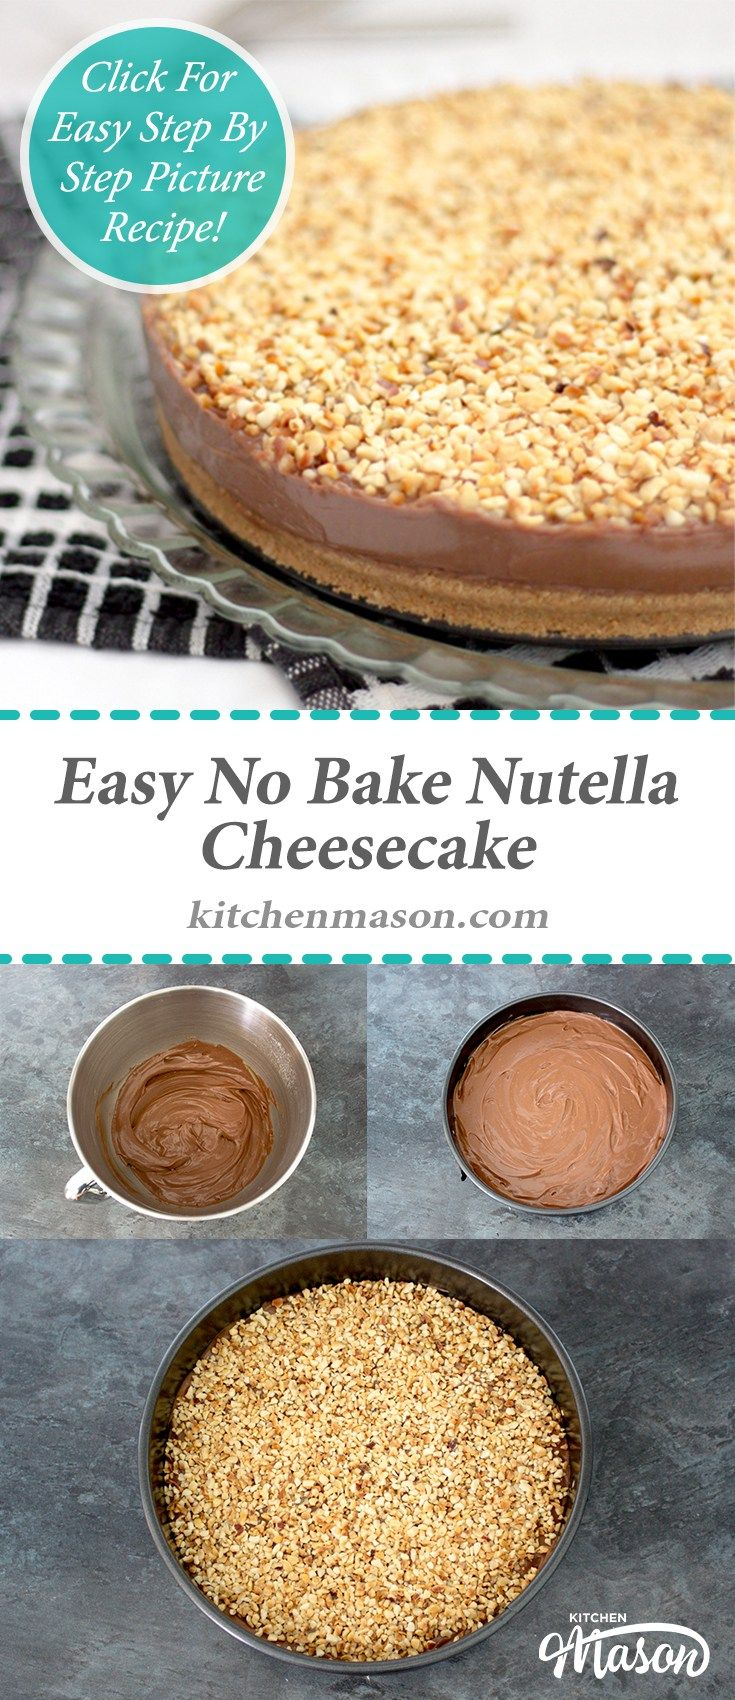 Easy No Bake Nutella Cheesecake | Make Ahead | Dessert